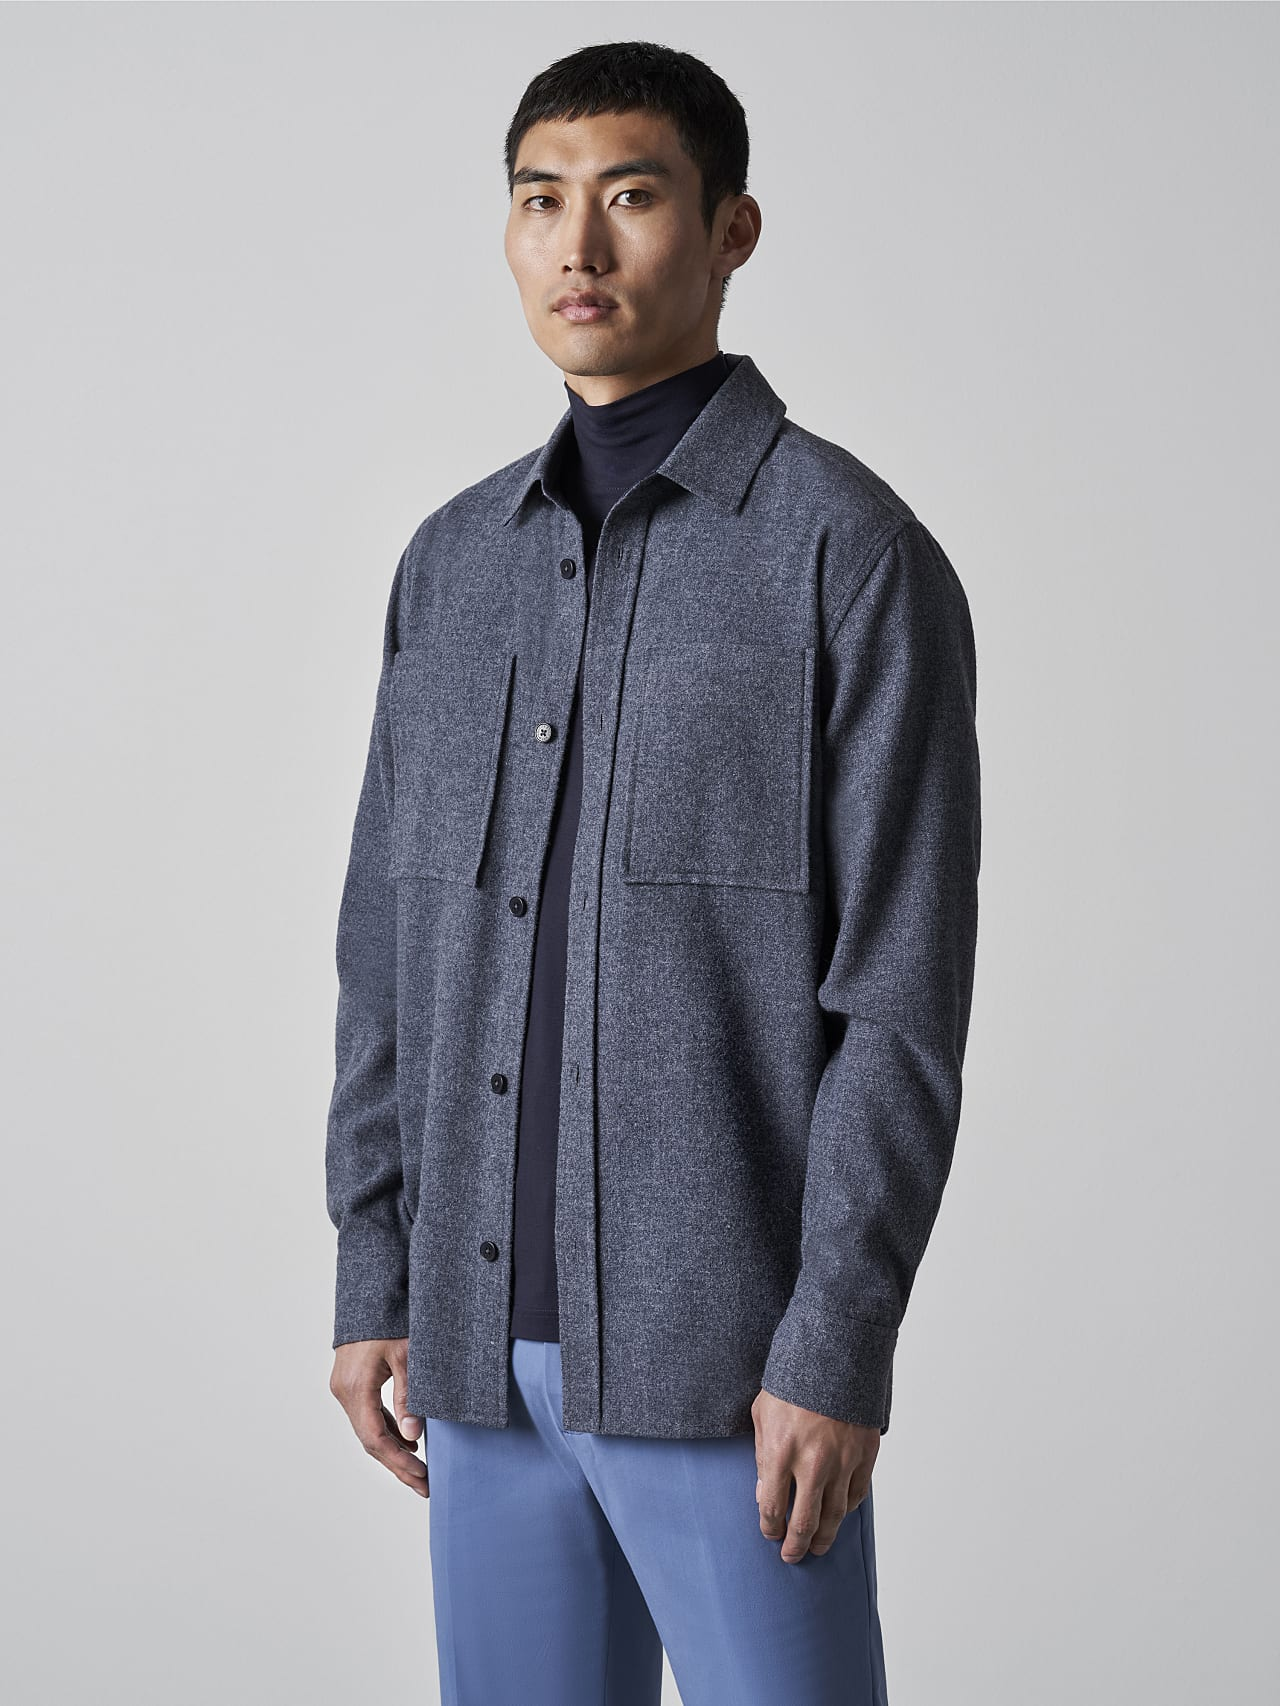 WOVER V1.Y5.02 Wool Over-Shirt navy Extra Alpha Tauri